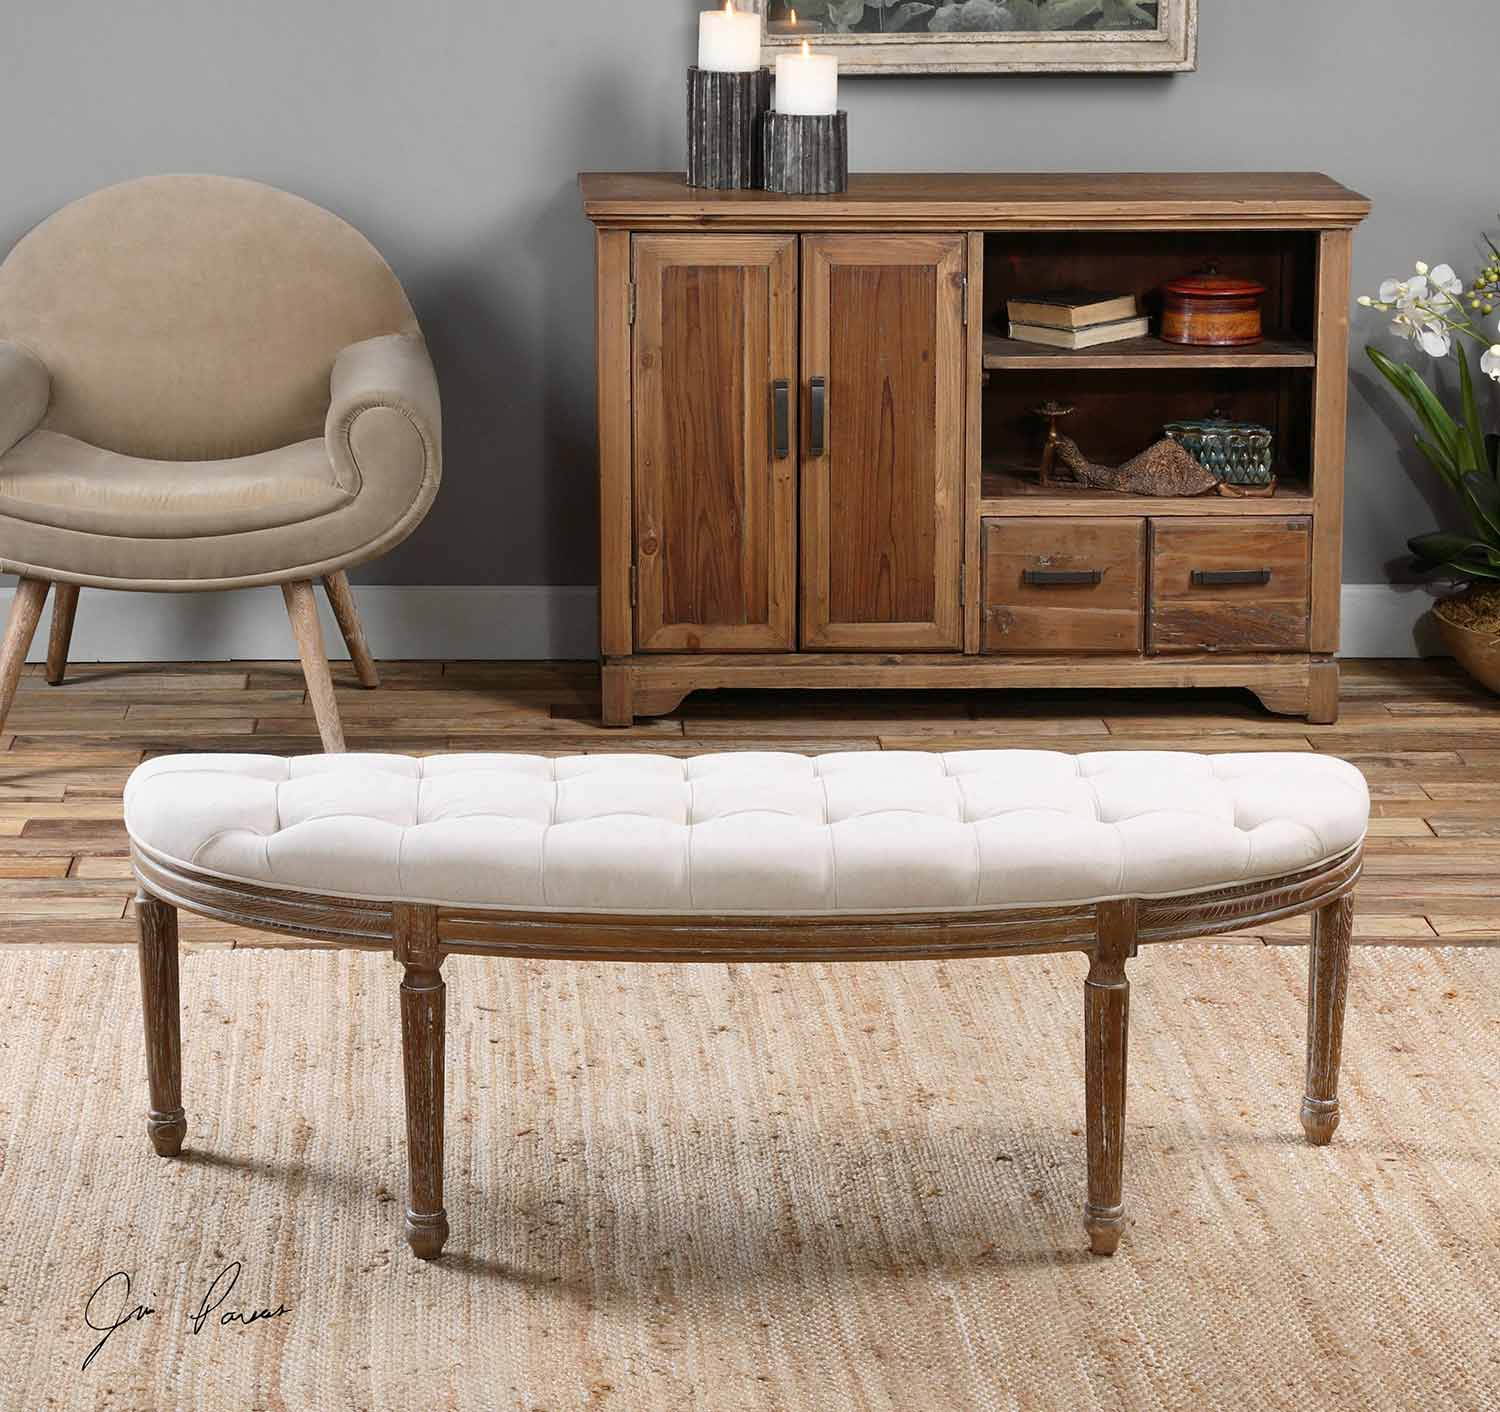 Uttermost Leggett Tufted Bench - White